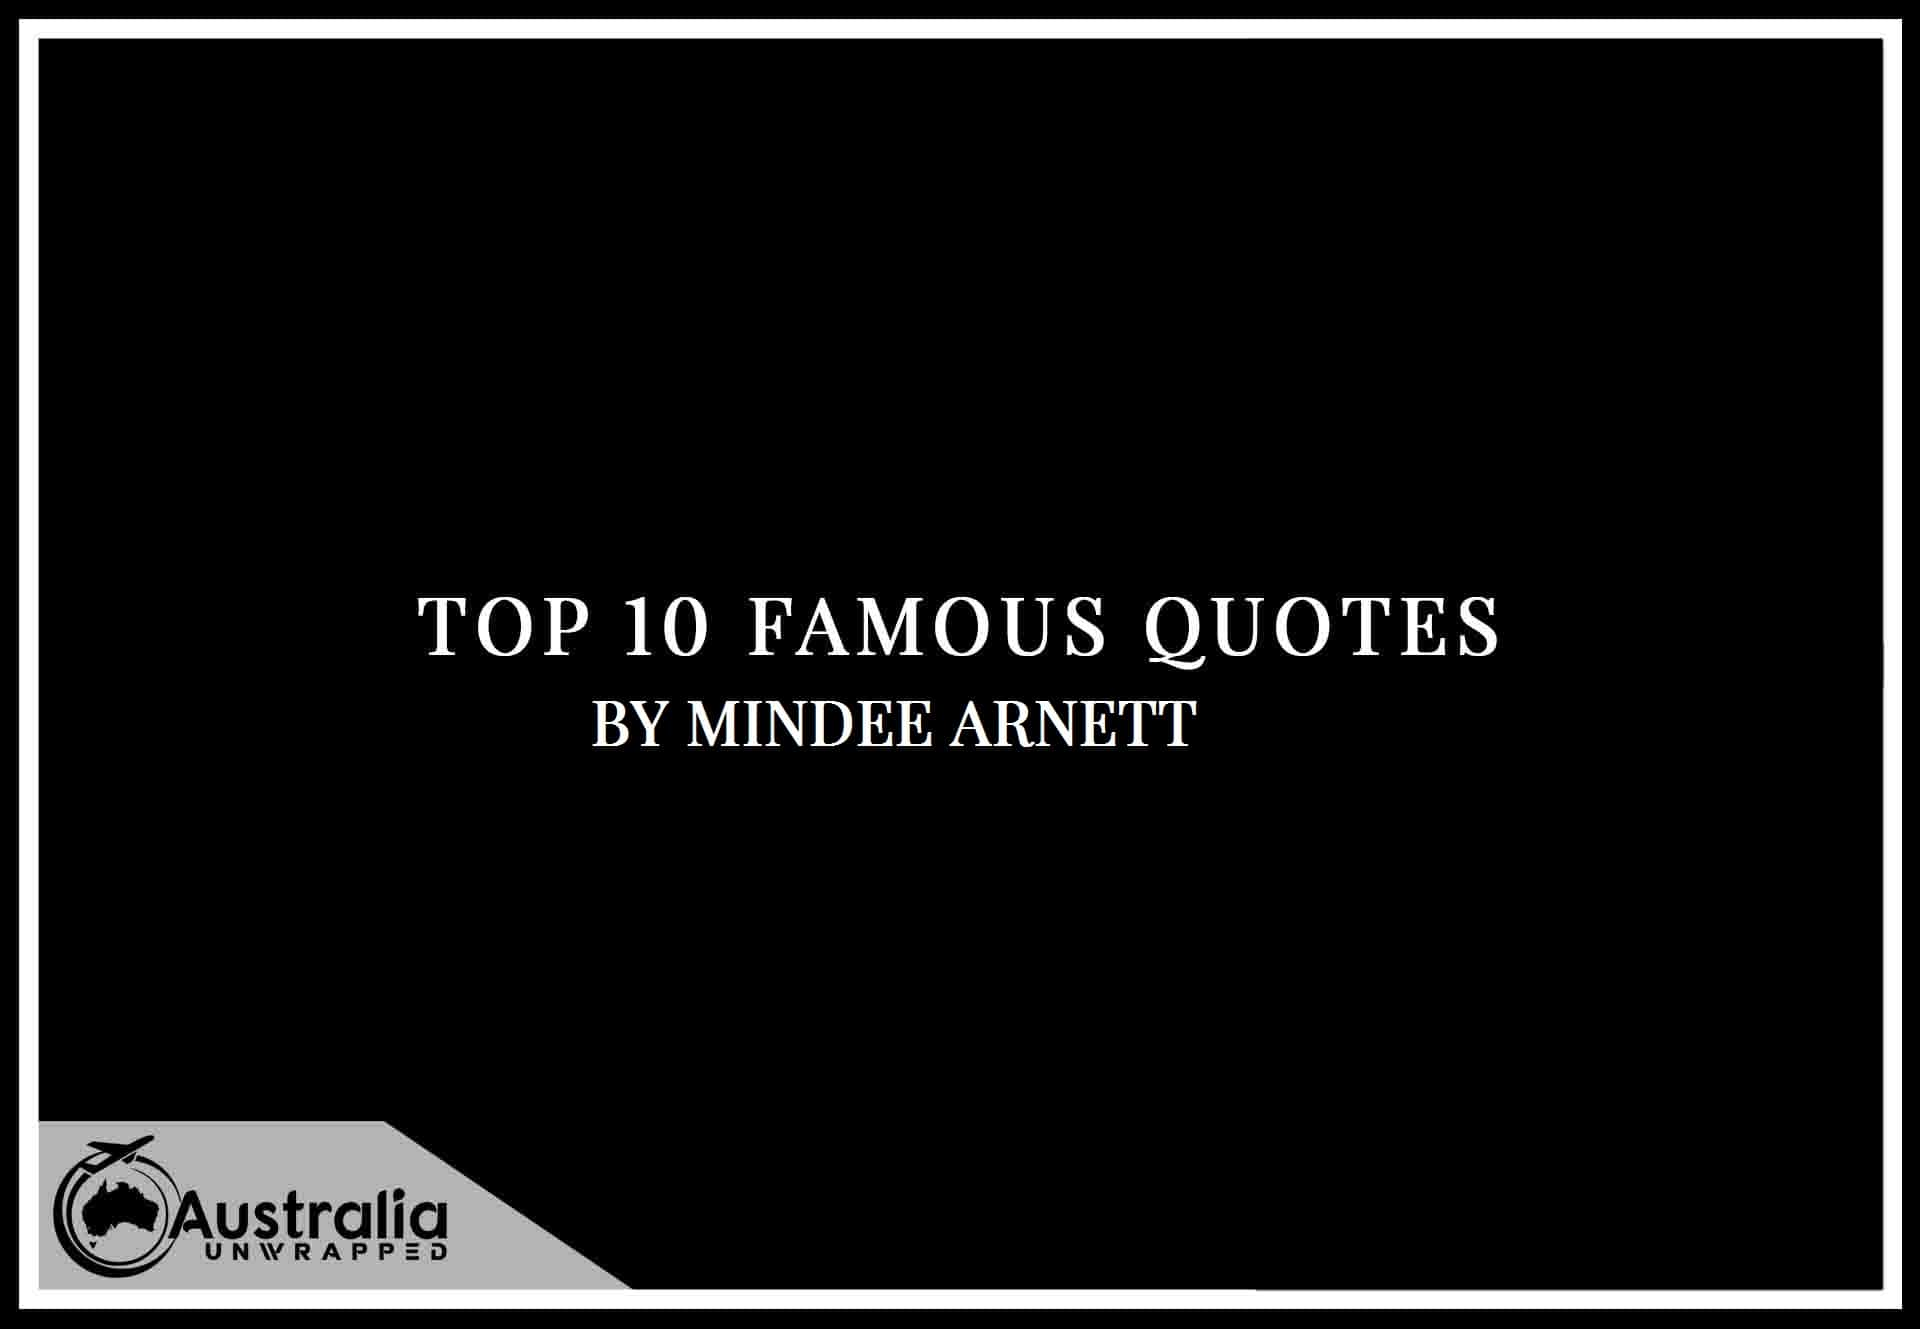 Mindee Arnett's Top 10 Popular and Famous Quotes